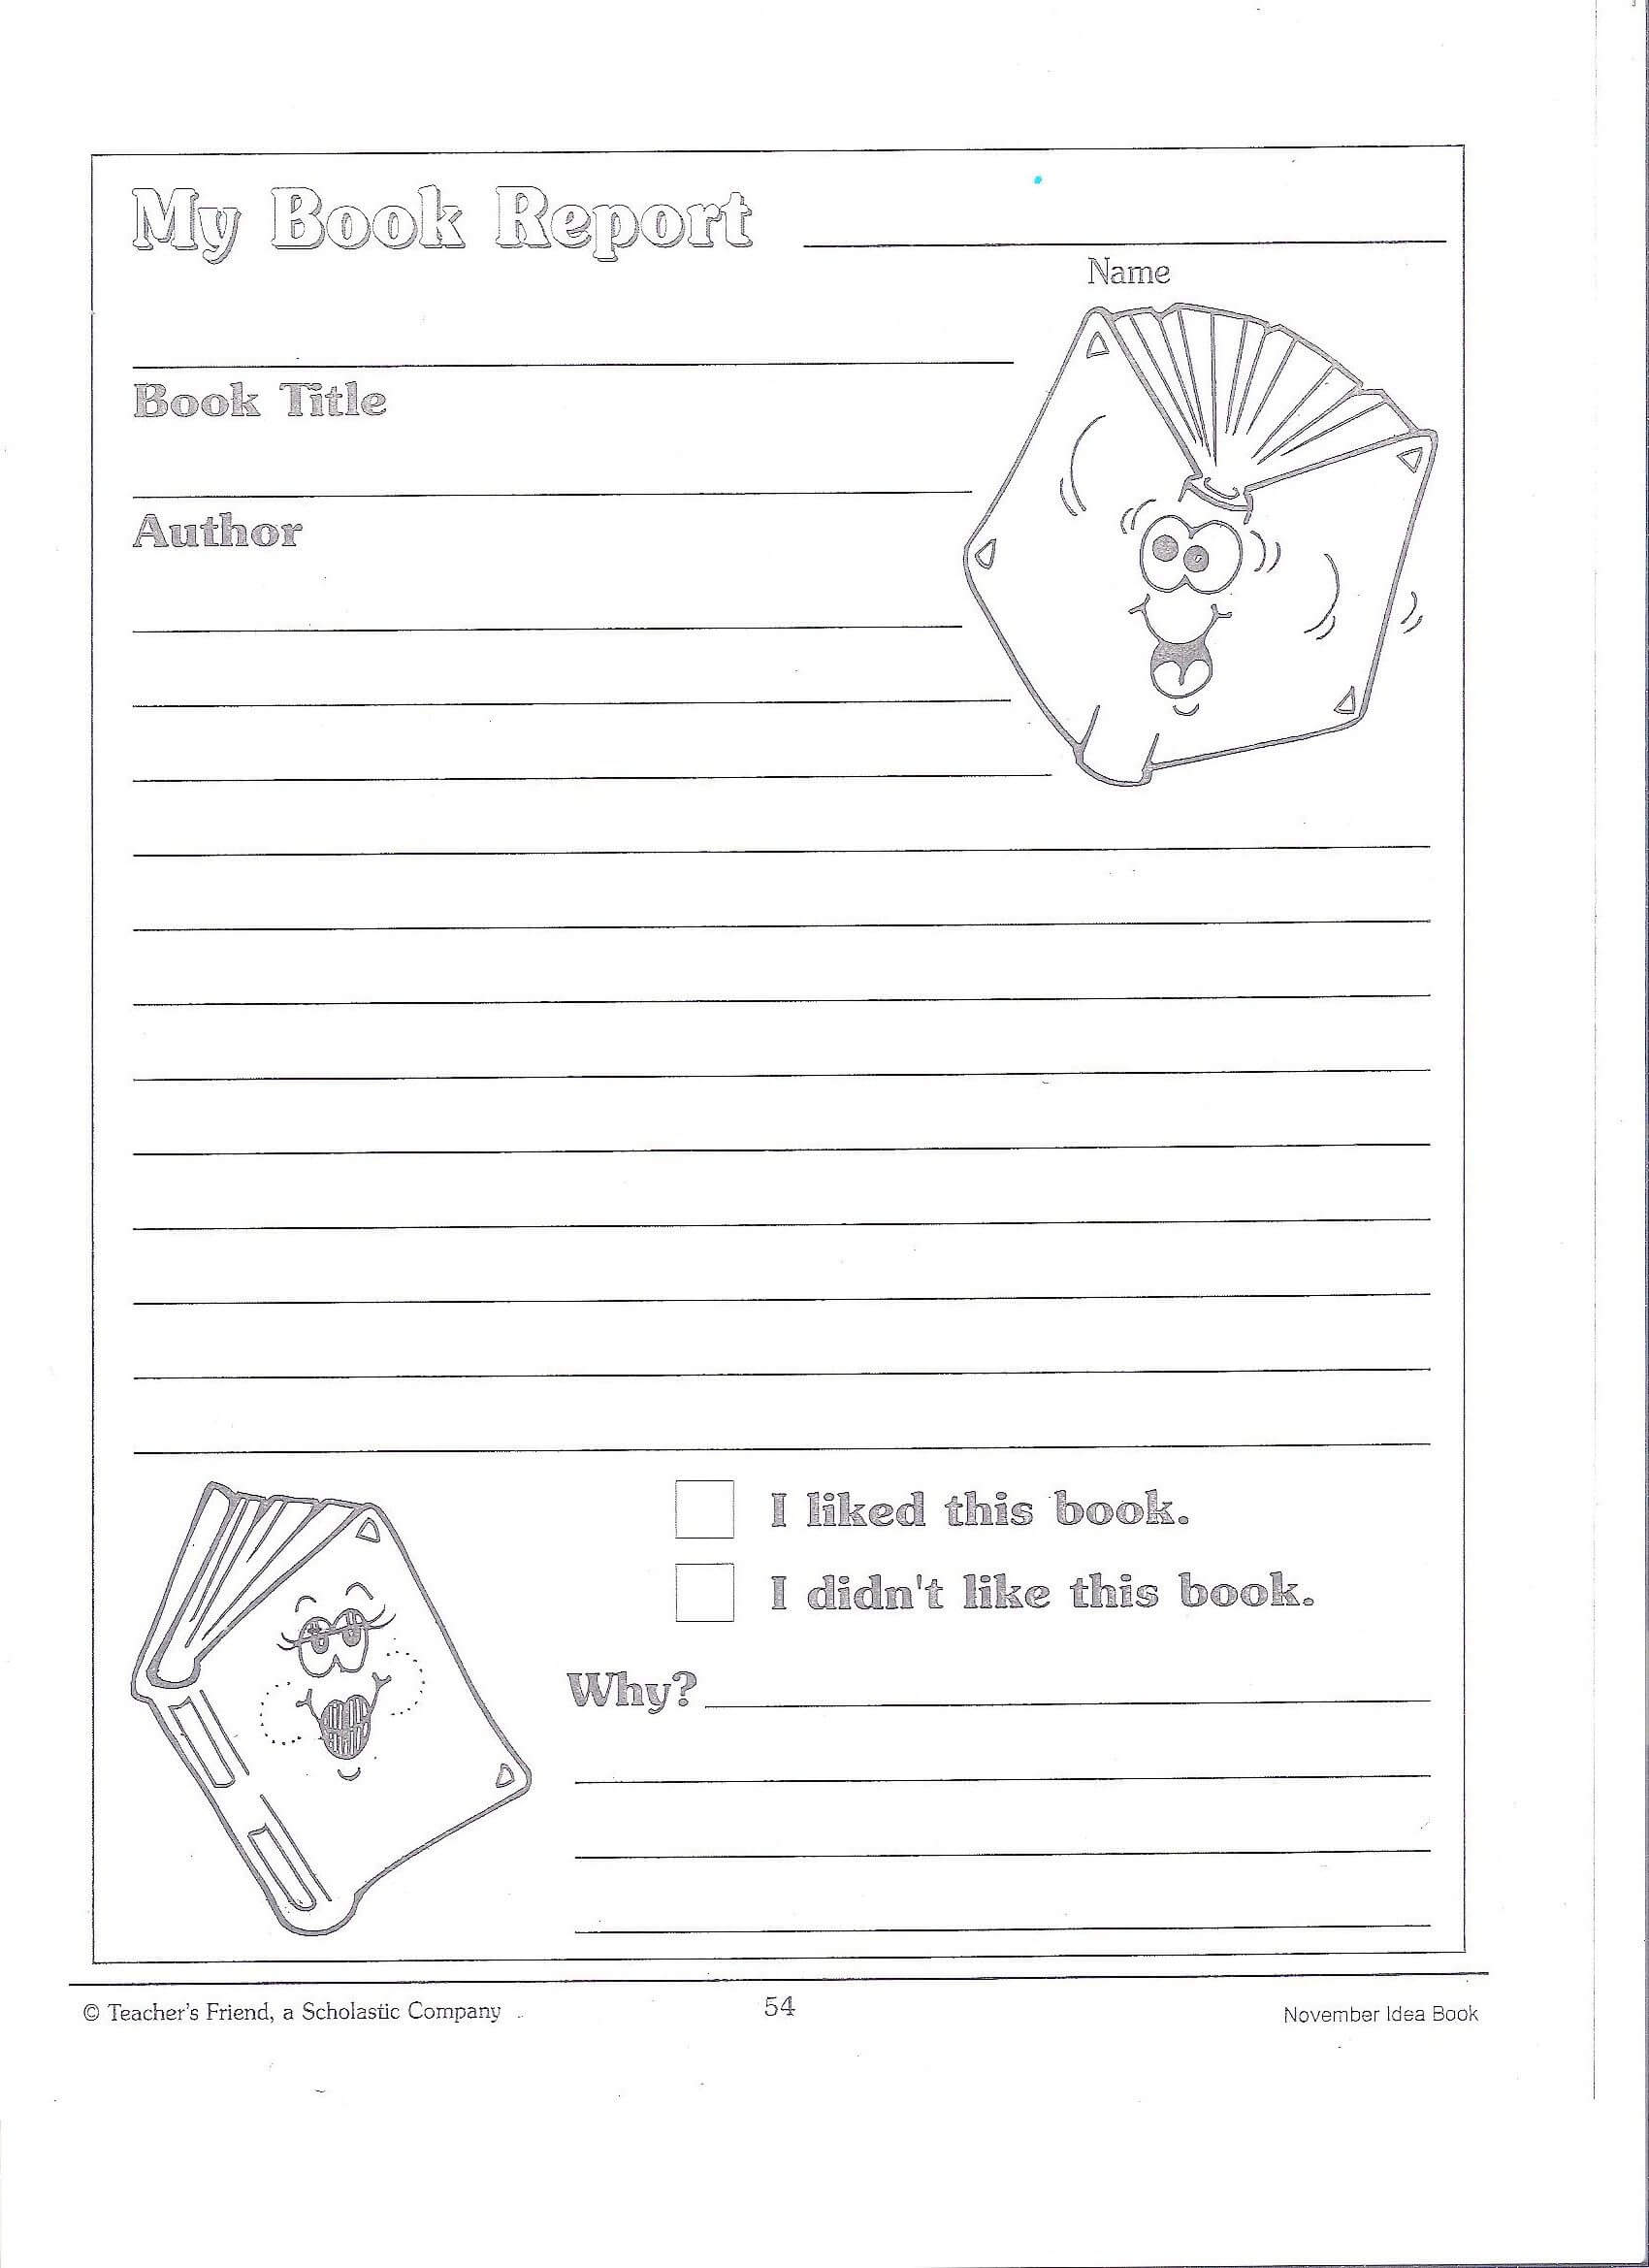 Printable Book Report Forms | Miss Murphy's 1St And 2Nd Inside 1St Grade Book Report Template